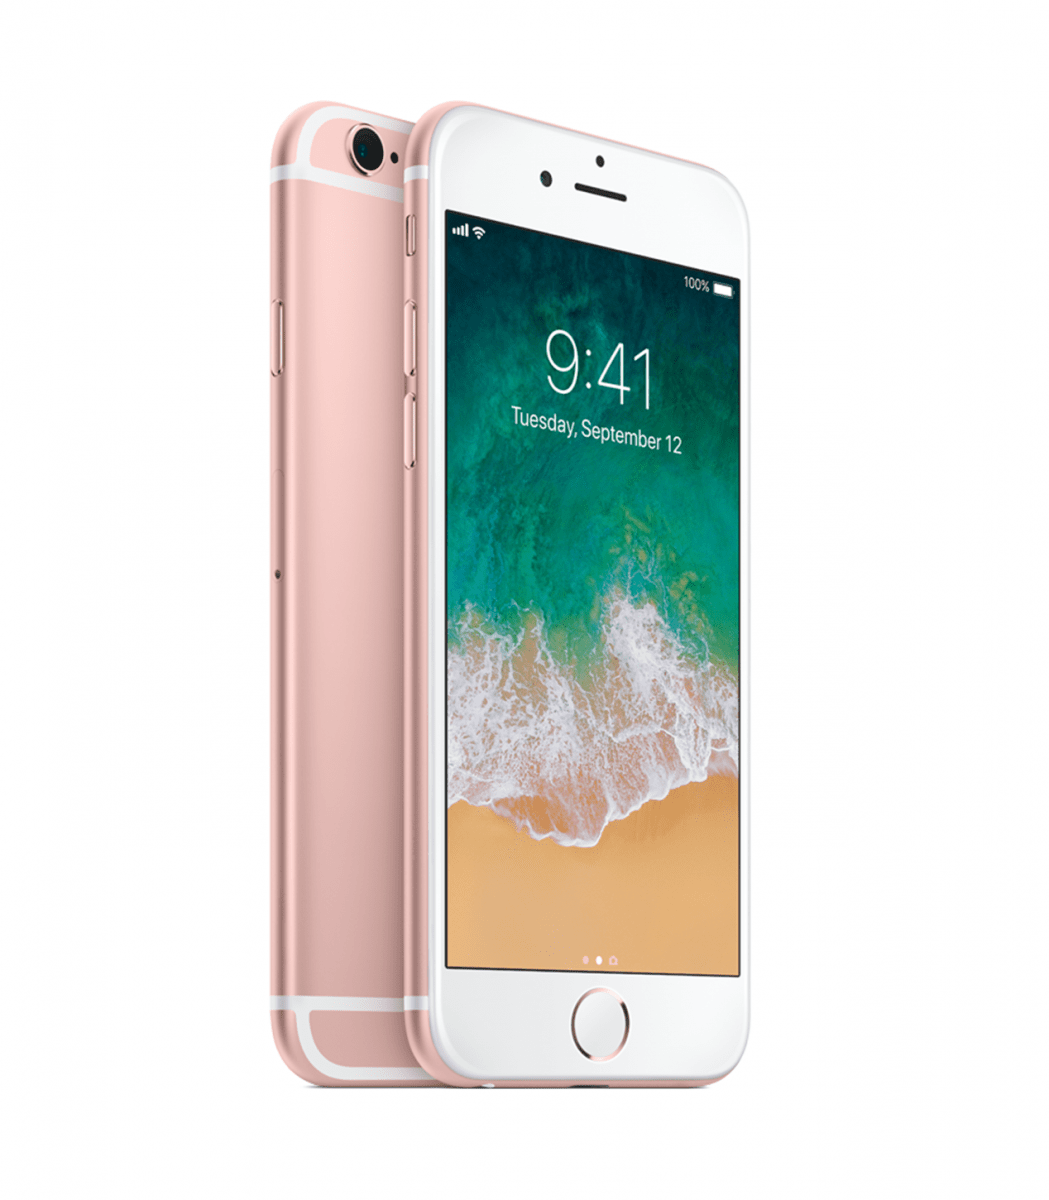 Iphone Se 128gb Begagnad Iphone 6s 128gb Rosa Guld Teknikhouse Se